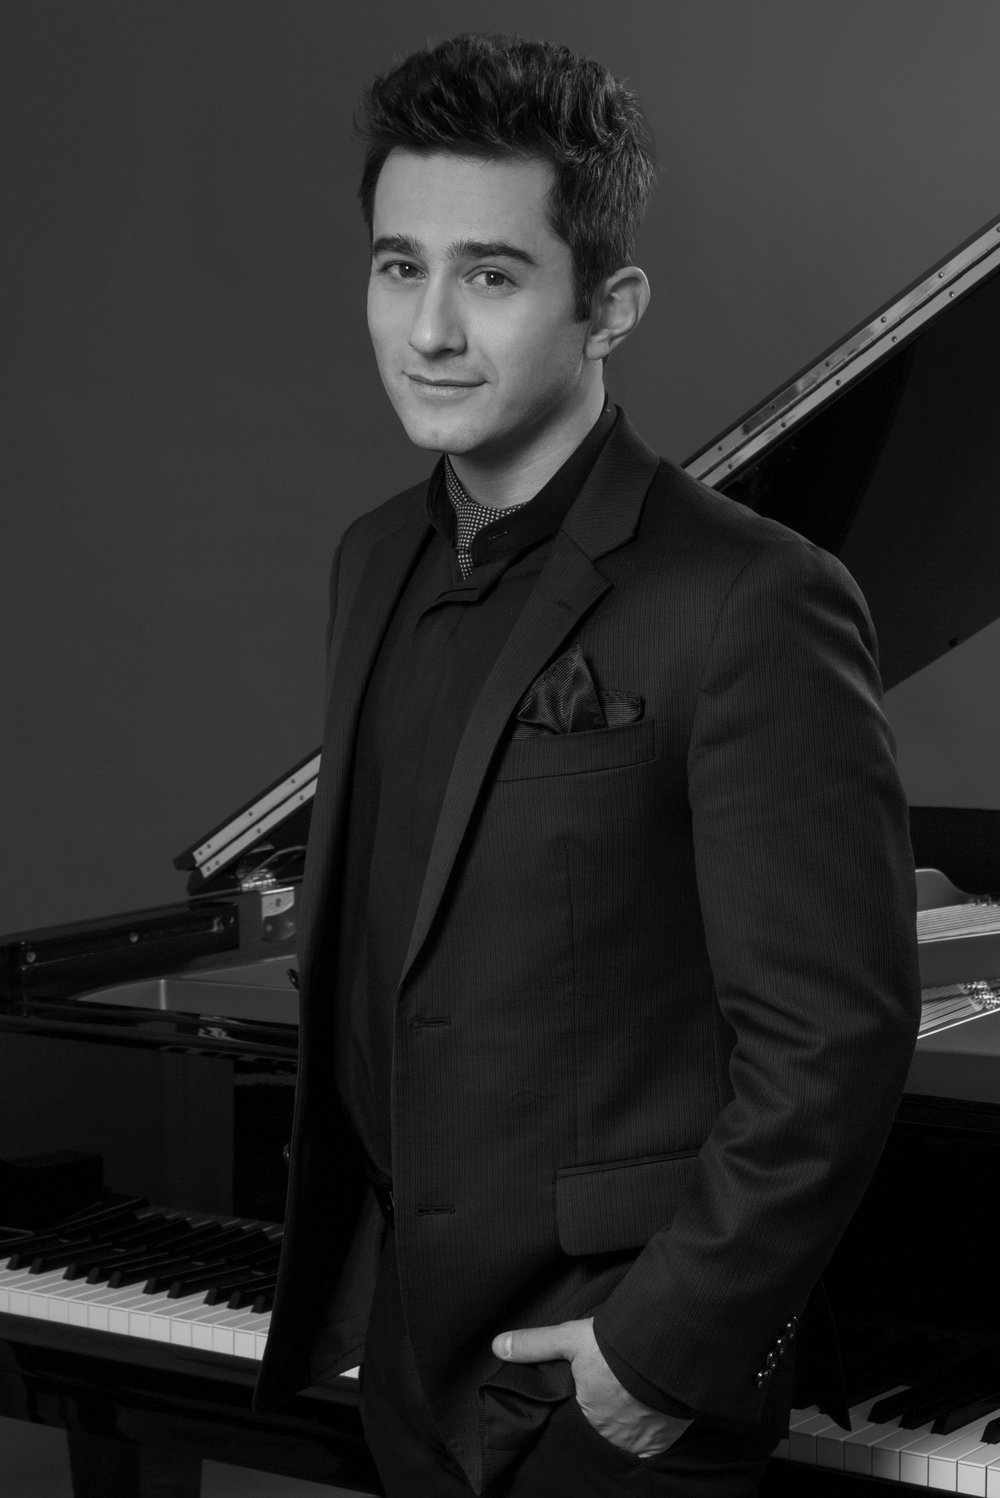 MattBaker_Katz_Press shot Piano_D8C2758a - Vertical BW Closeup.jpg